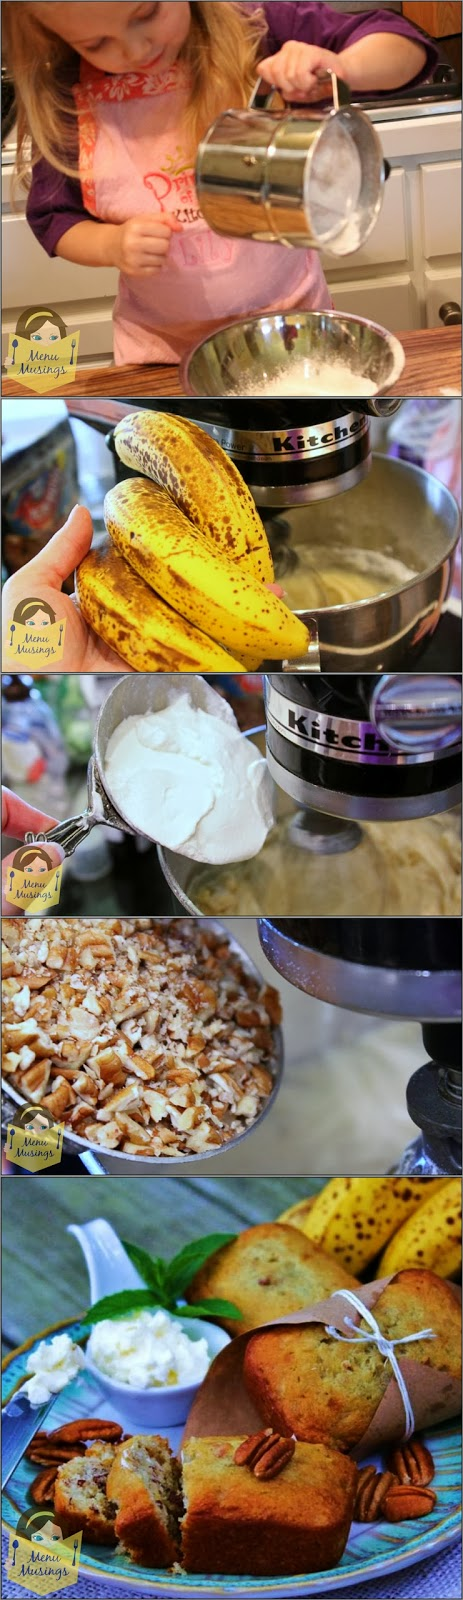 http://menumusings.blogspot.com/2012/04/sour-cream-banana-nut-bread.html